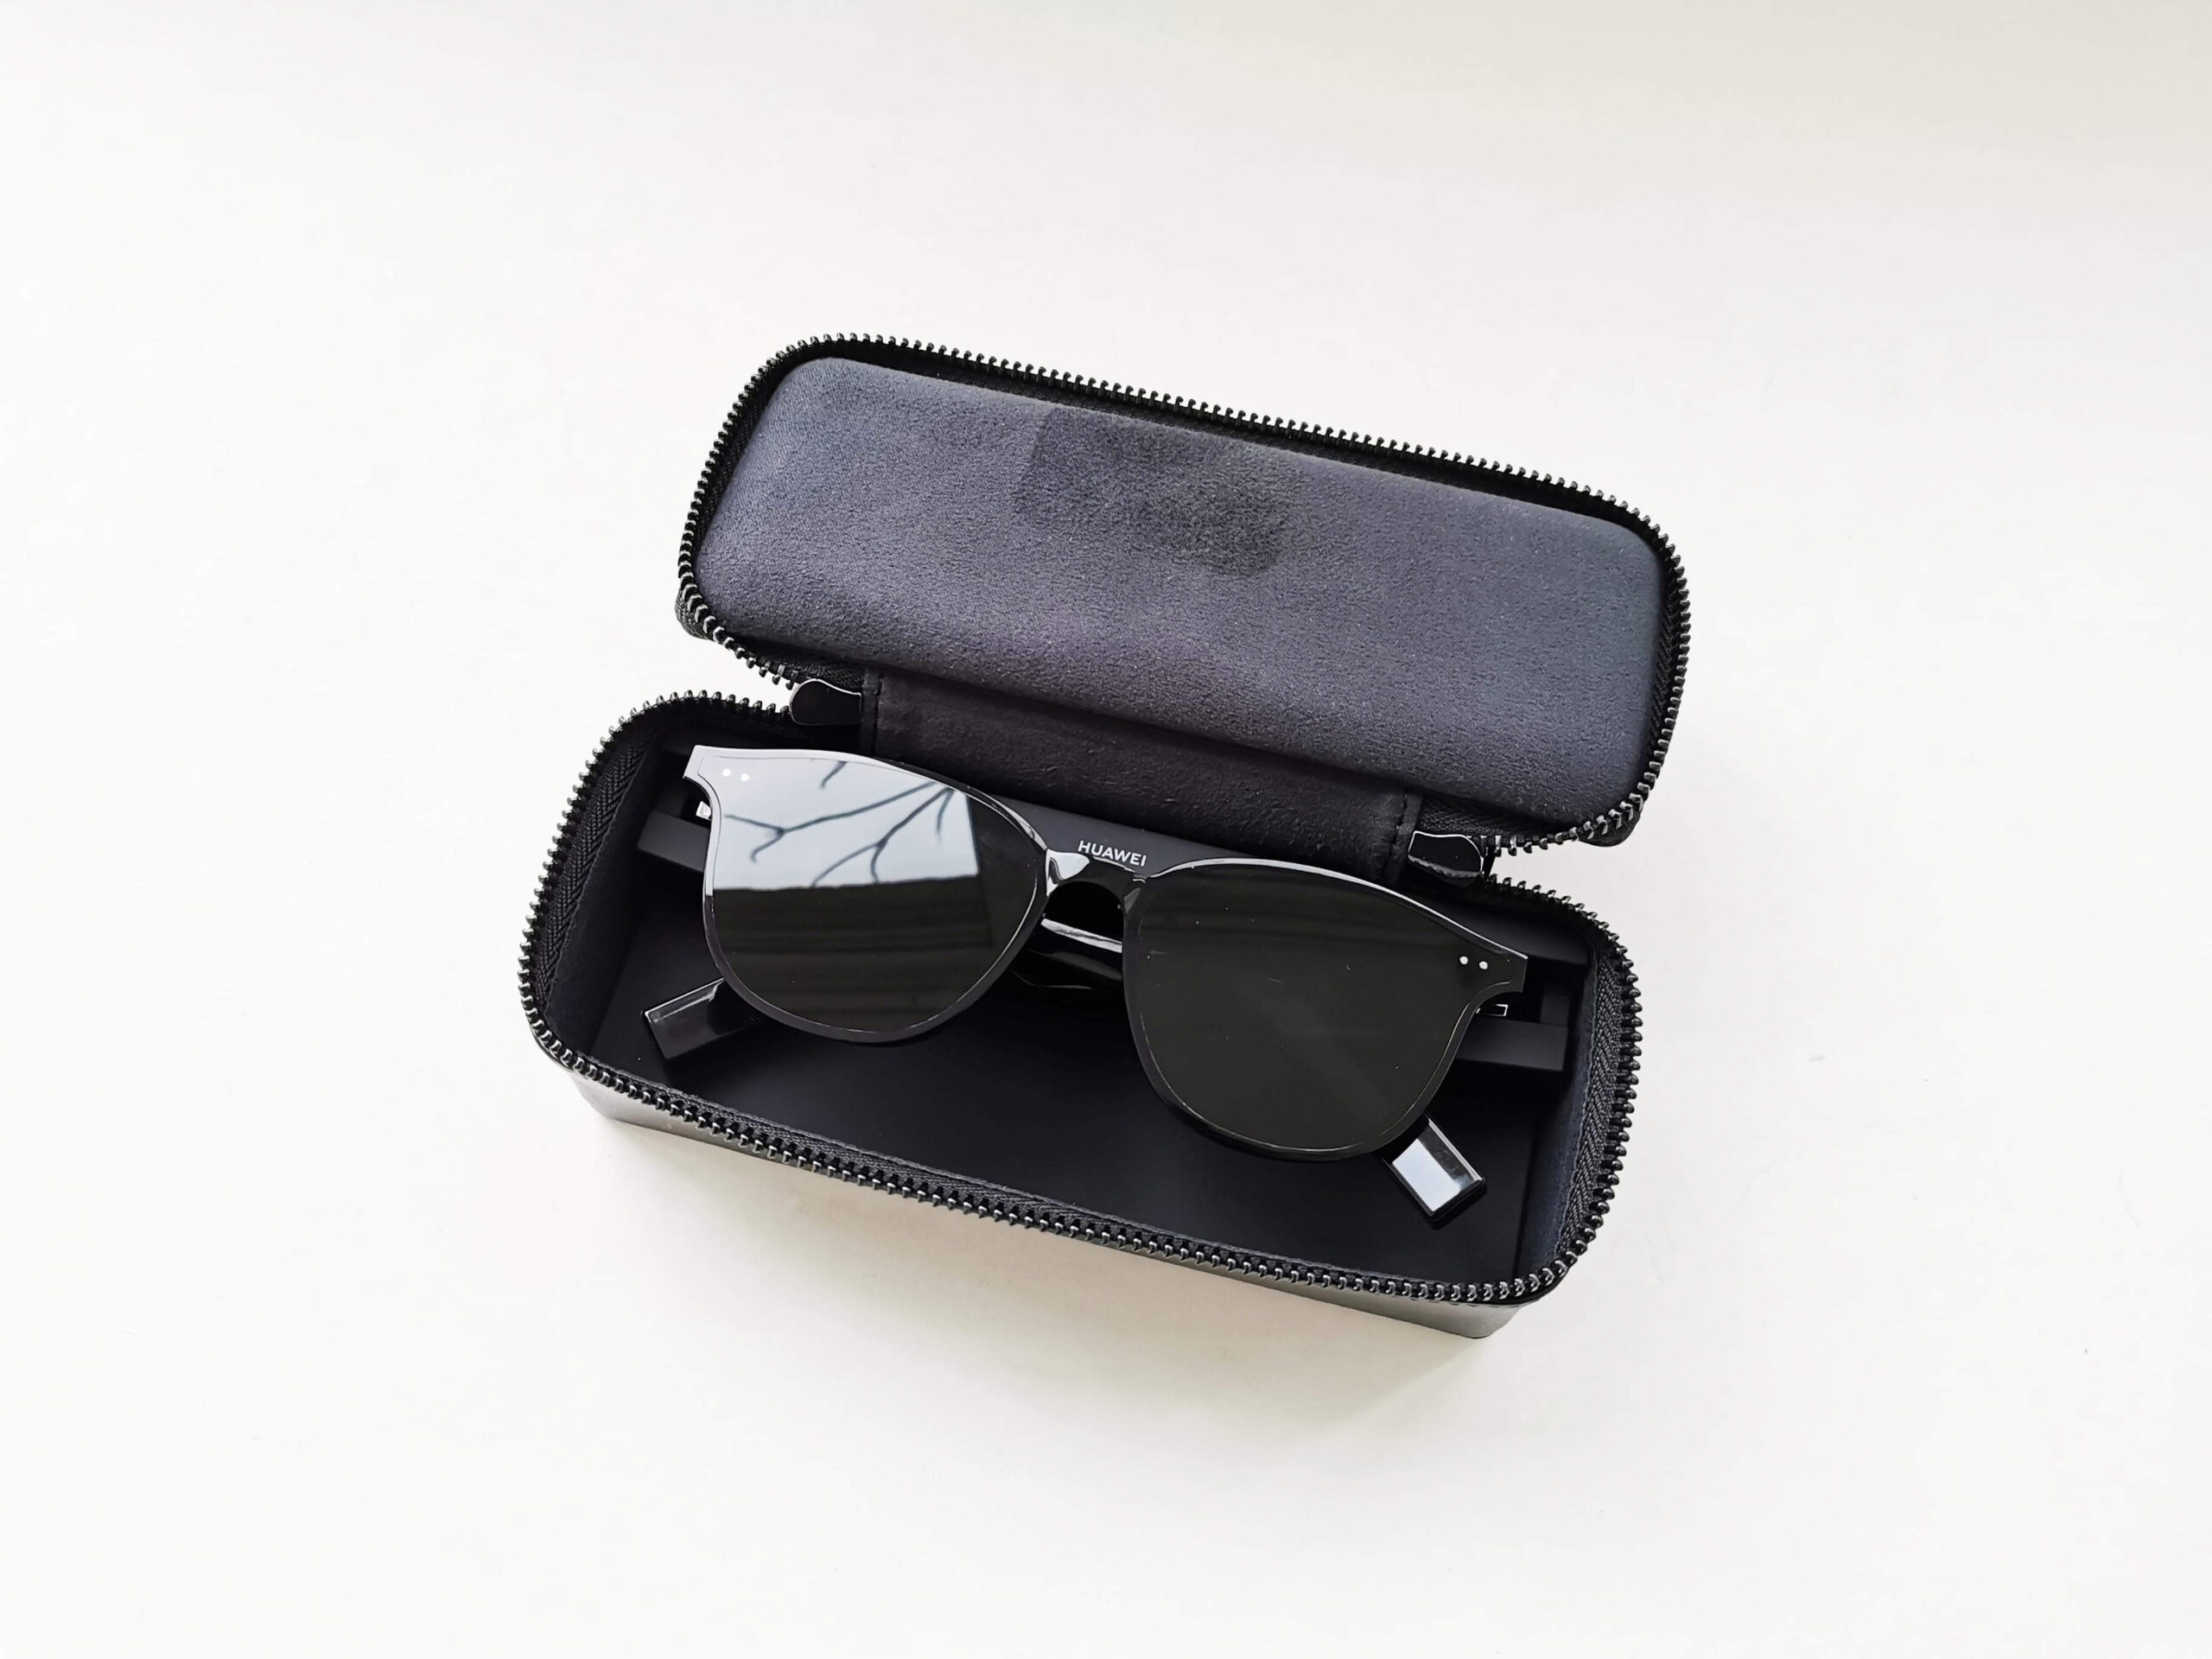 HUAWEI X Gentle Monster Eyewear II Review Romana si Pareri 6